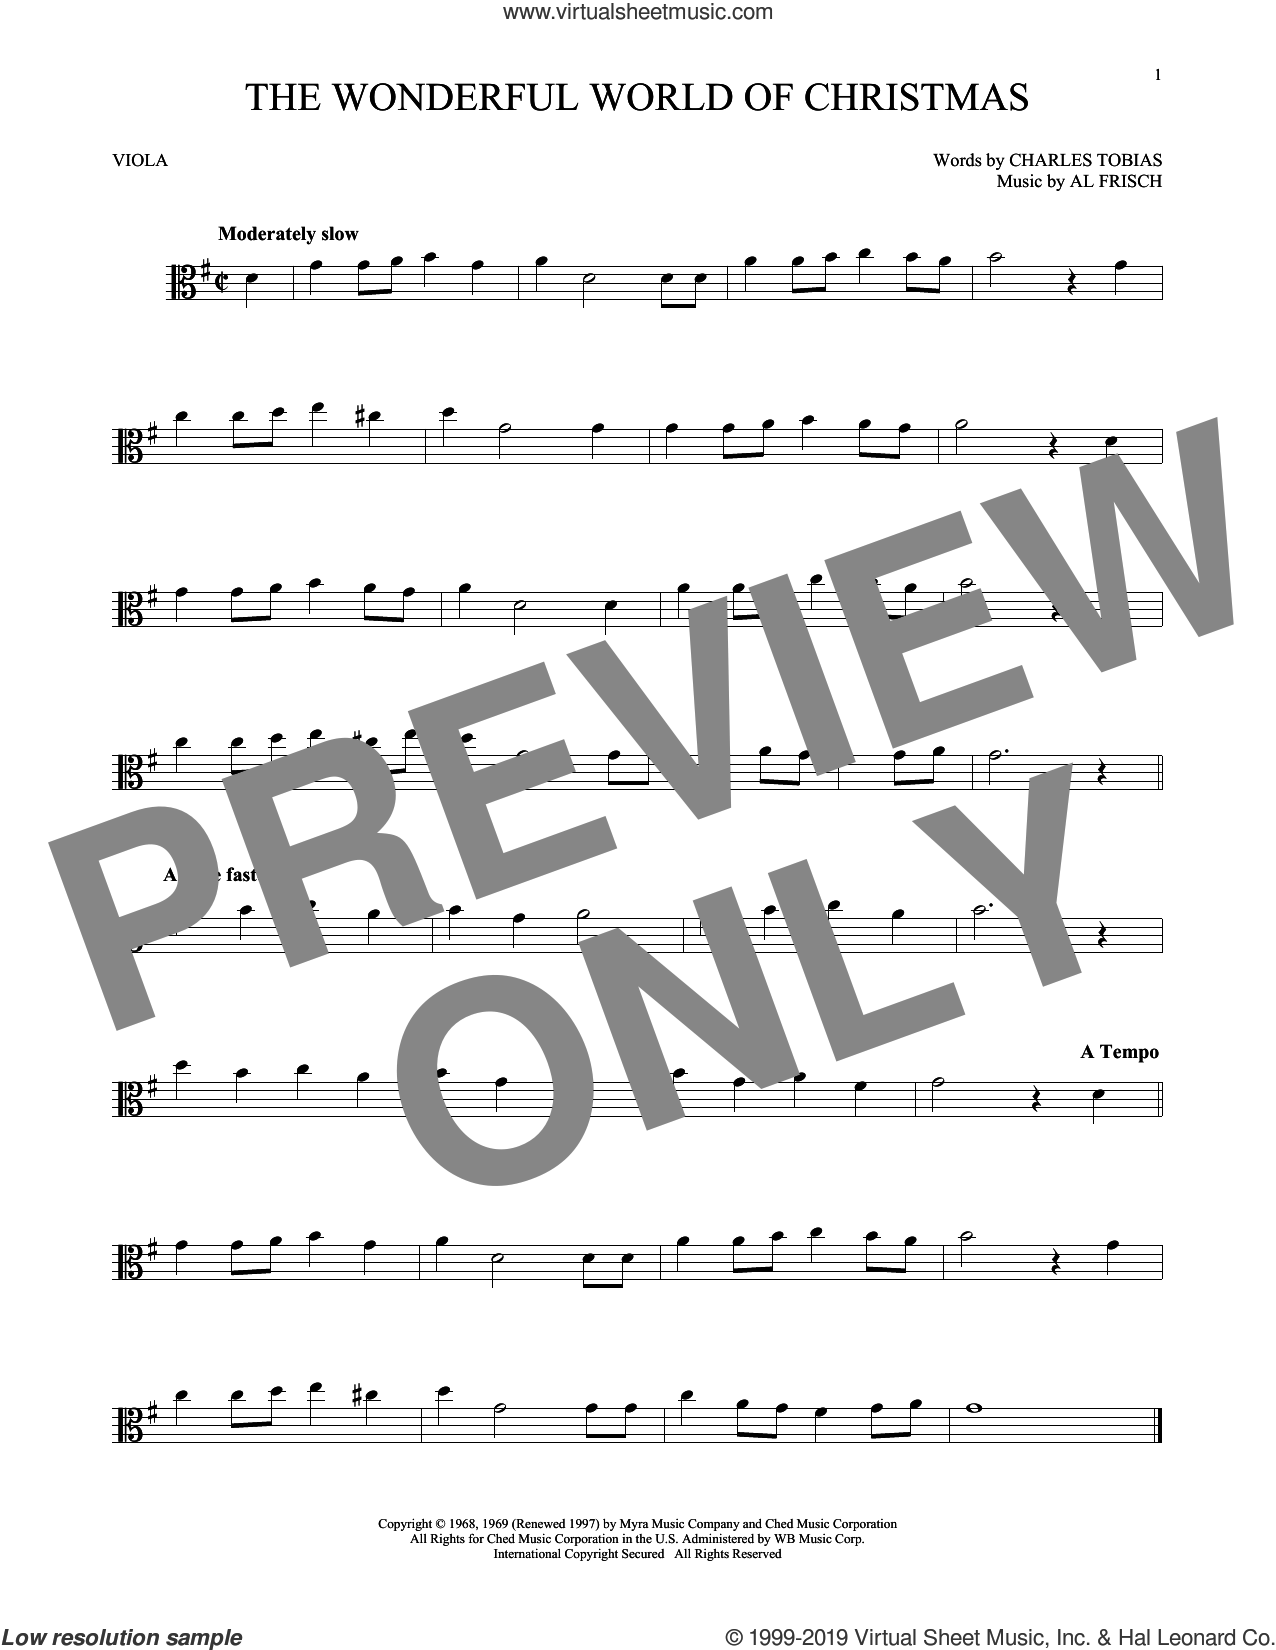 The Wonderful World Of Christmas sheet music for viola solo by Elvis Presley, Al Frisch and Charles Tobias, intermediate skill level